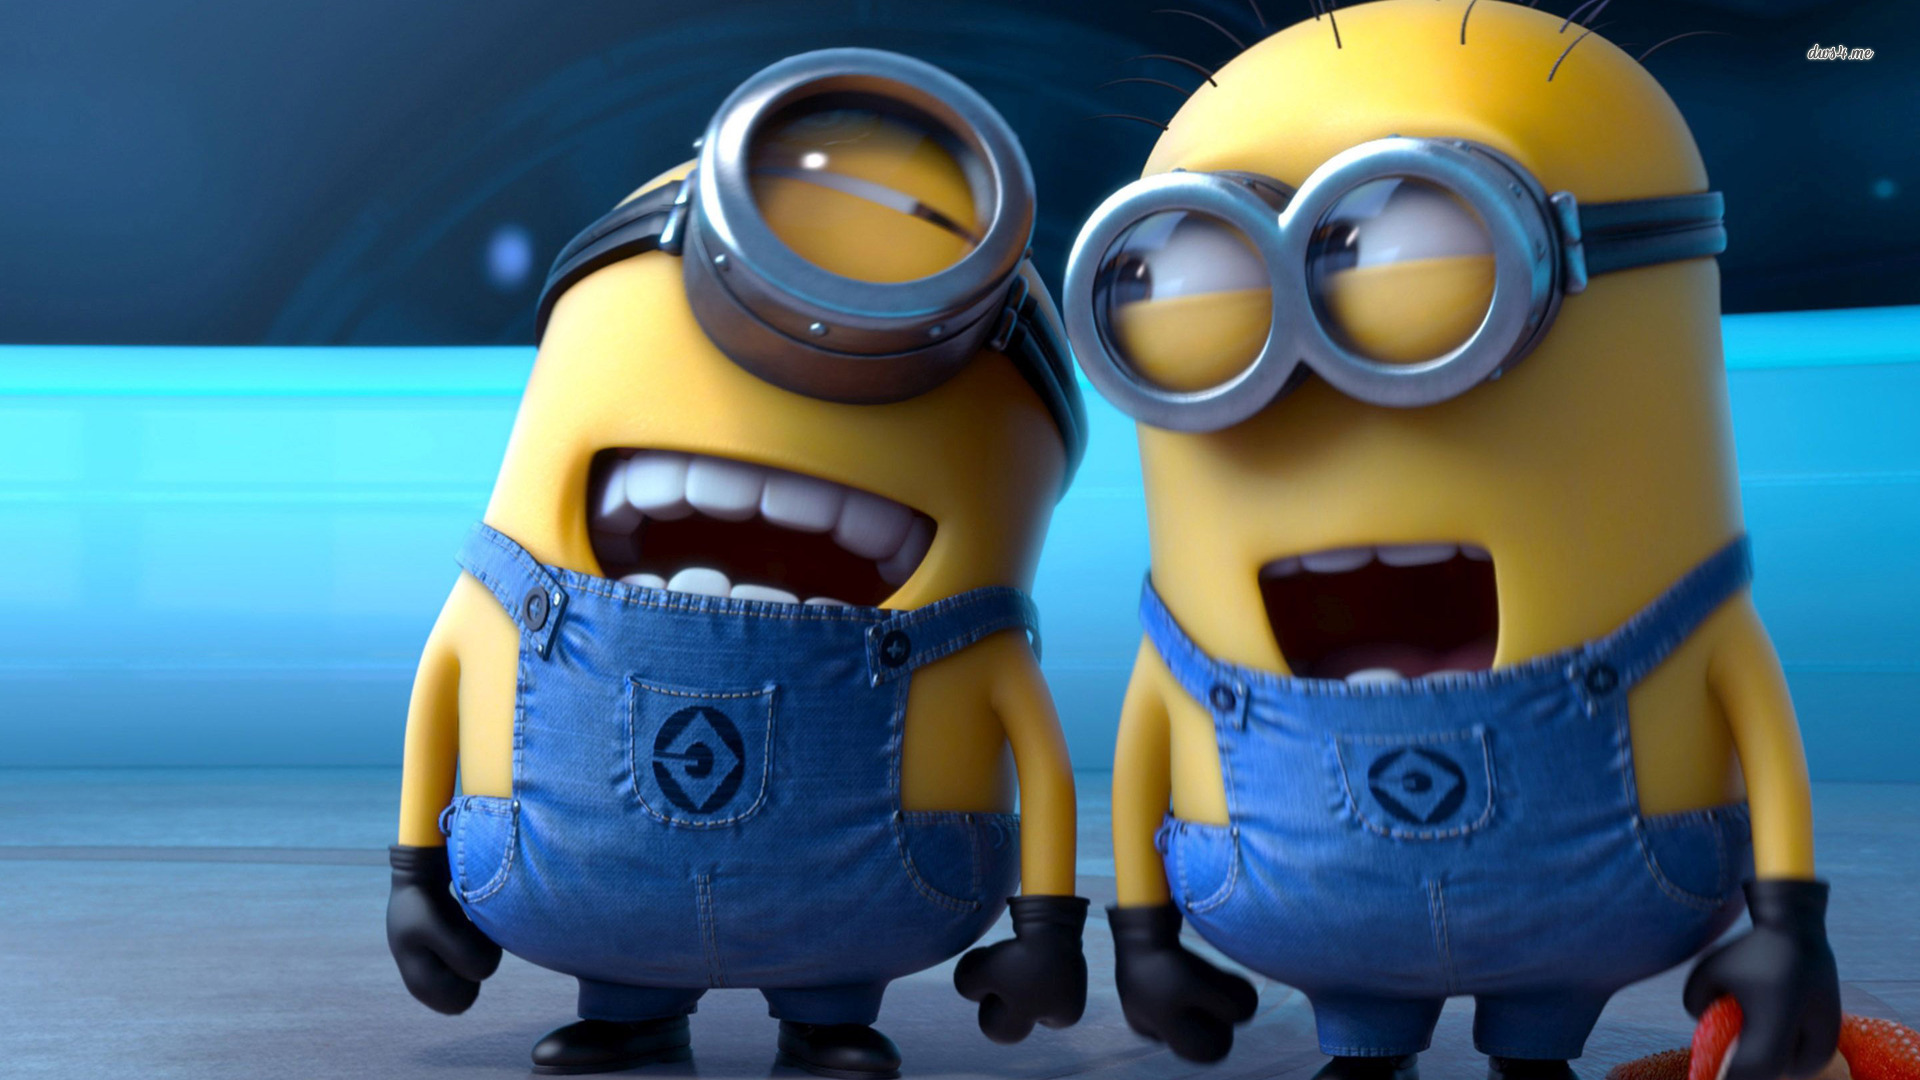 So, This Is The Official Reason There Are No Female Minions